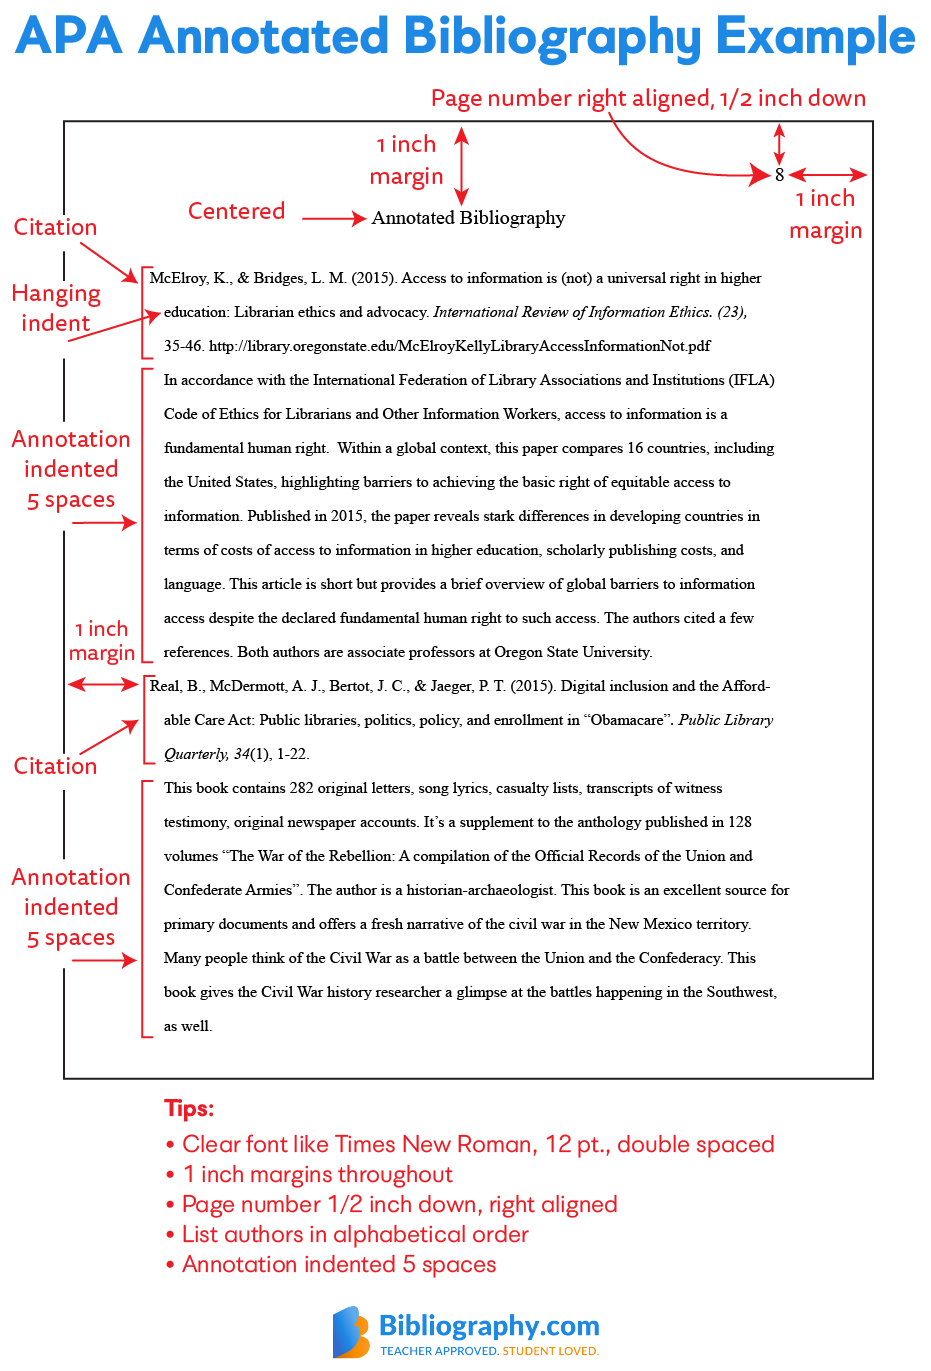 APA Annotated Bibliography example from Bibliography.com